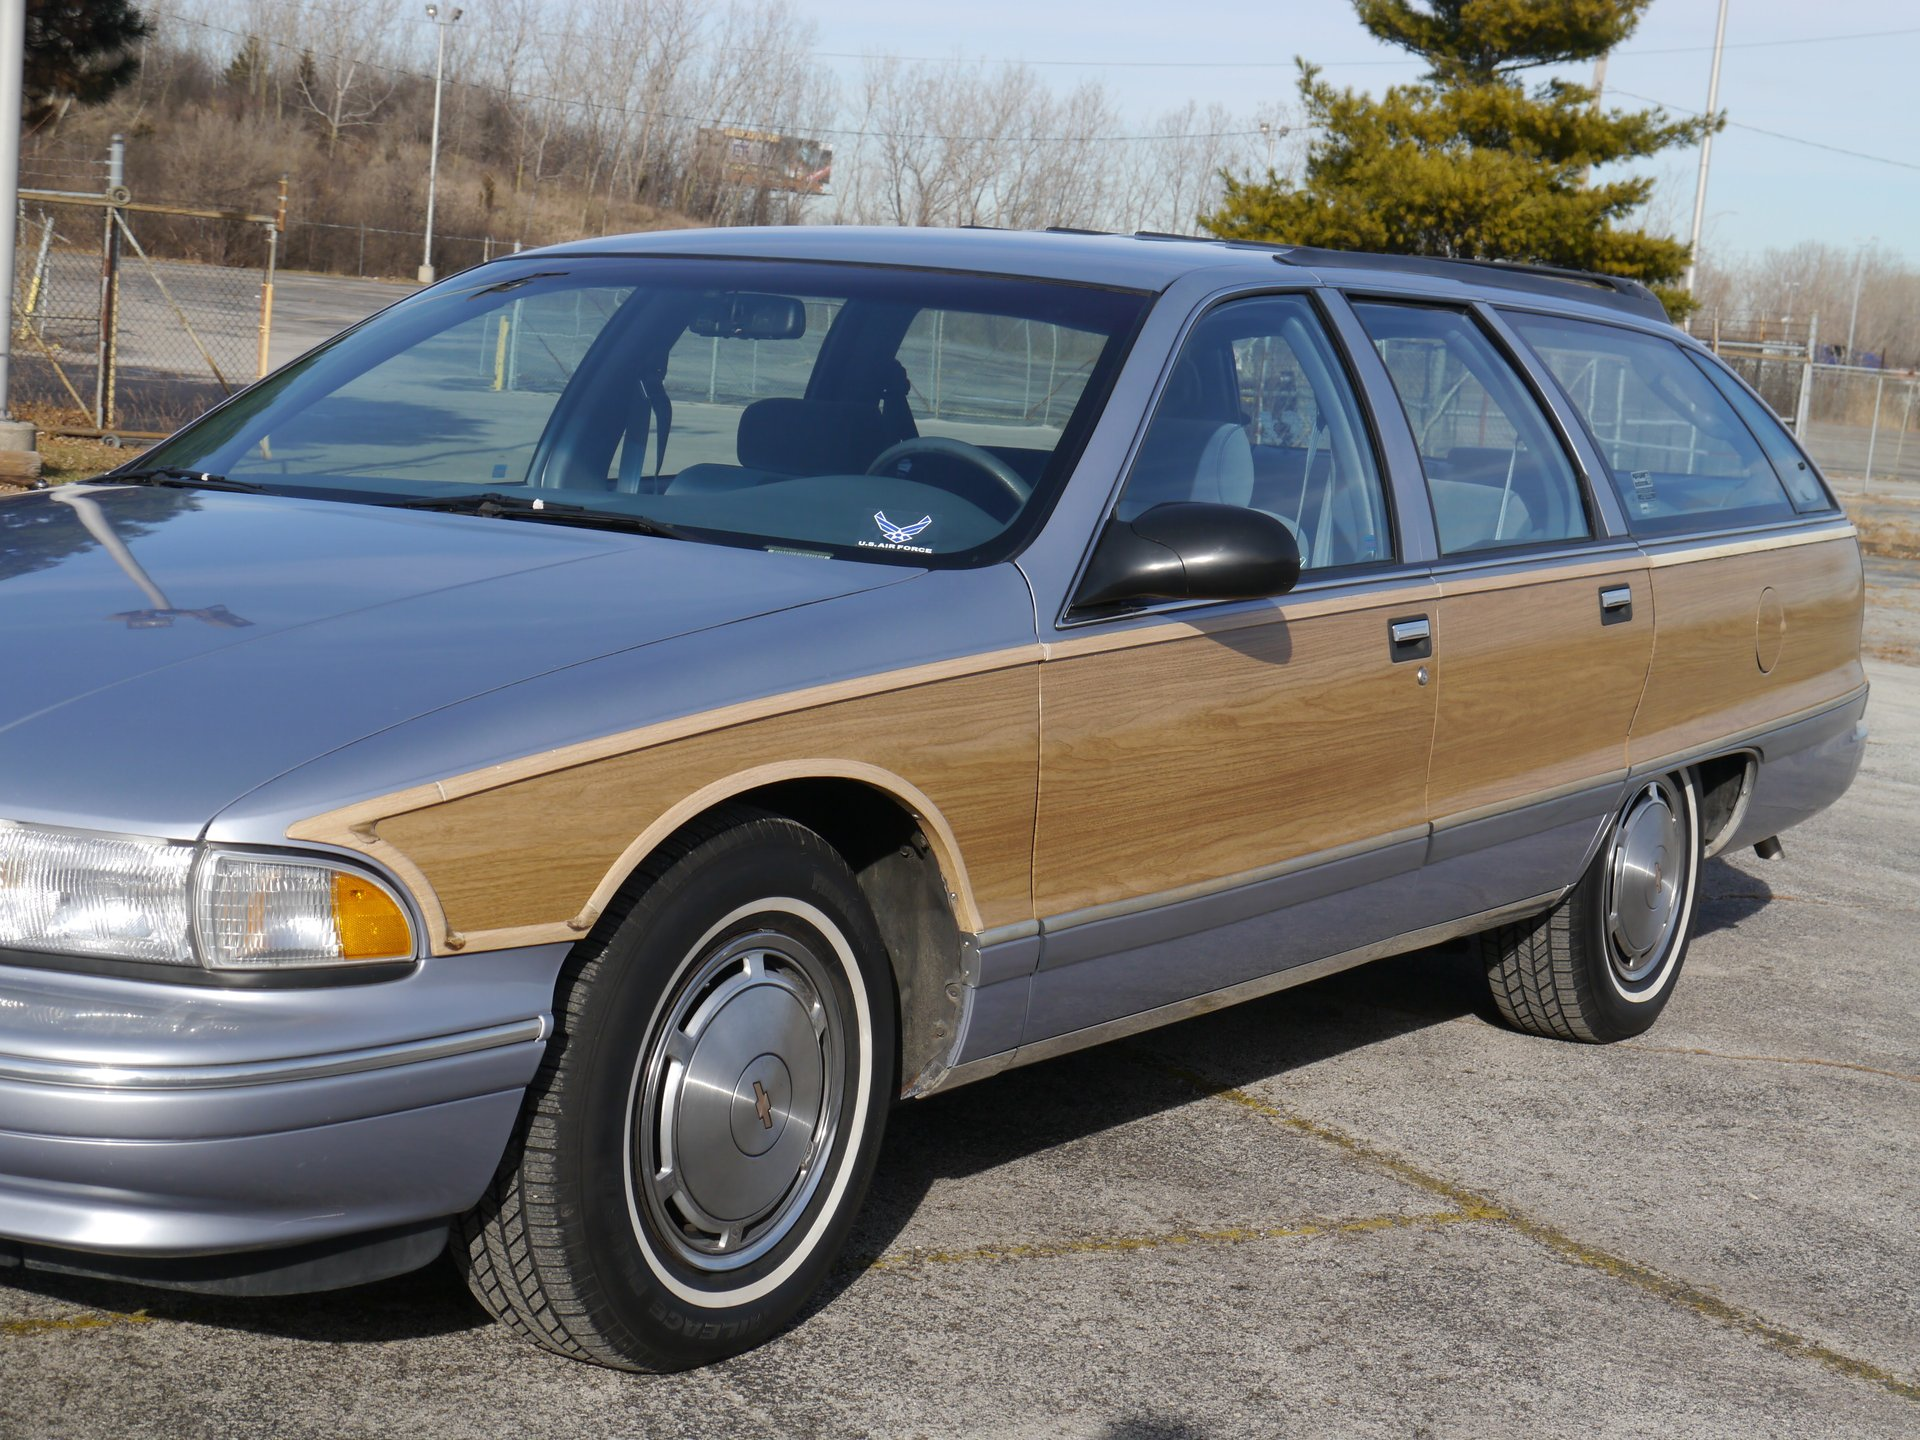 1995 Chevrolet Caprice Classic Station Wagon for sale #76134